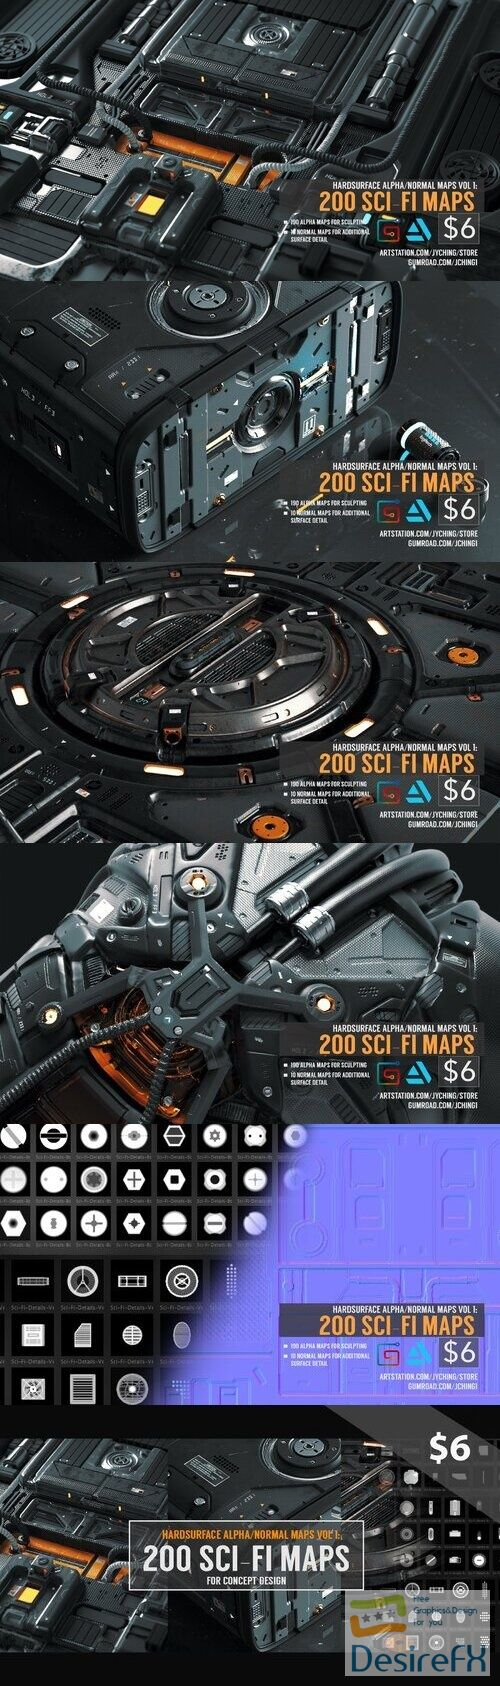 Hardsurface Alpha-Normal Maps Vol 1 200 Sci-Fi Maps